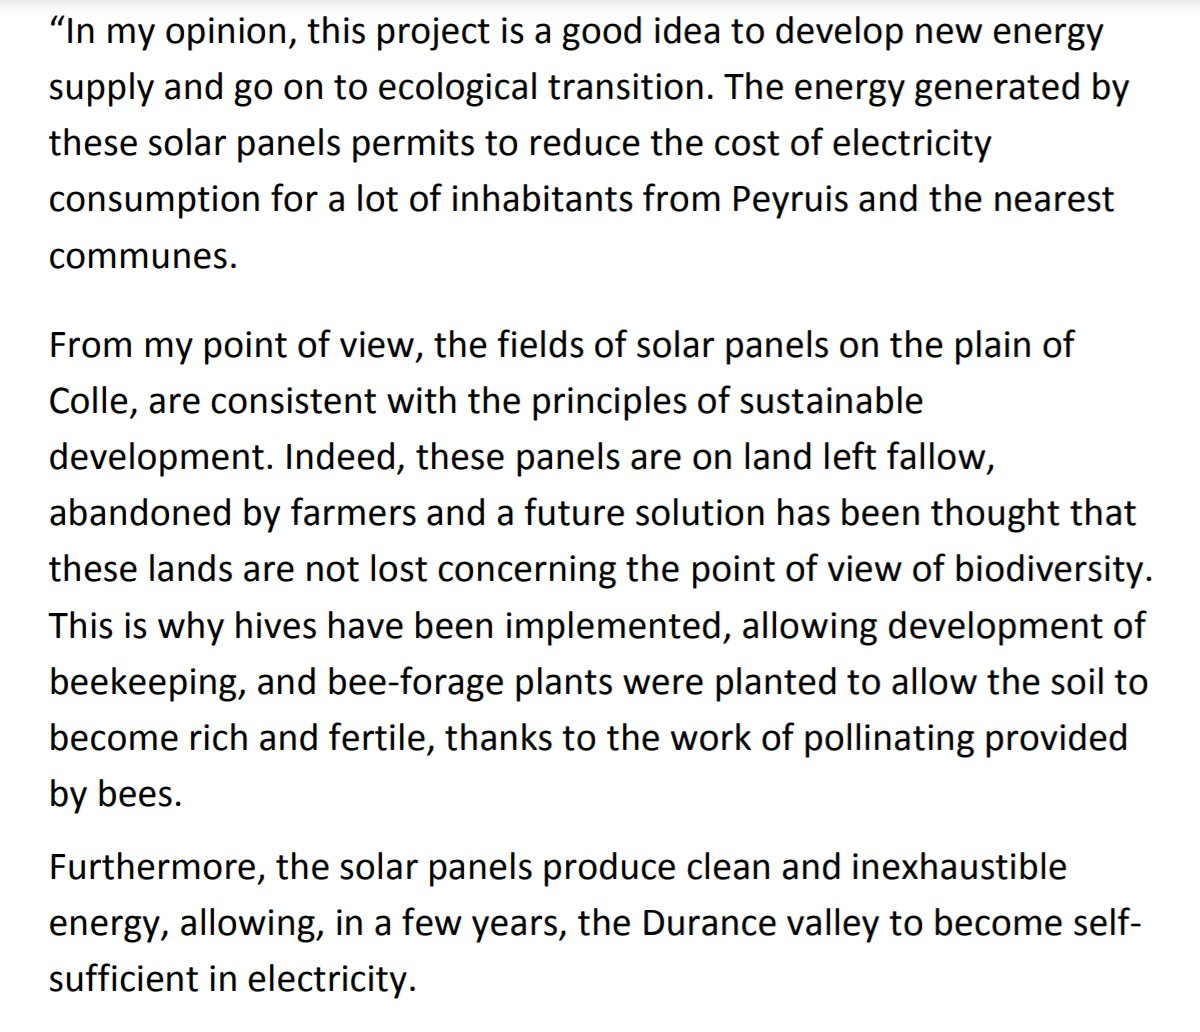 """In fact, Les Mées was also specifically designed without concrete, and built on """"land left fallow, abandoned by farmers"""", and included the addition of bee hives, and bee-forage plants underneath the panels. Remember: this is back in 2011 https://iut.univ-amu.fr/sites/iut.univ-amu.fr/files/celine_canon_et_elodie_cravino.pdf"""